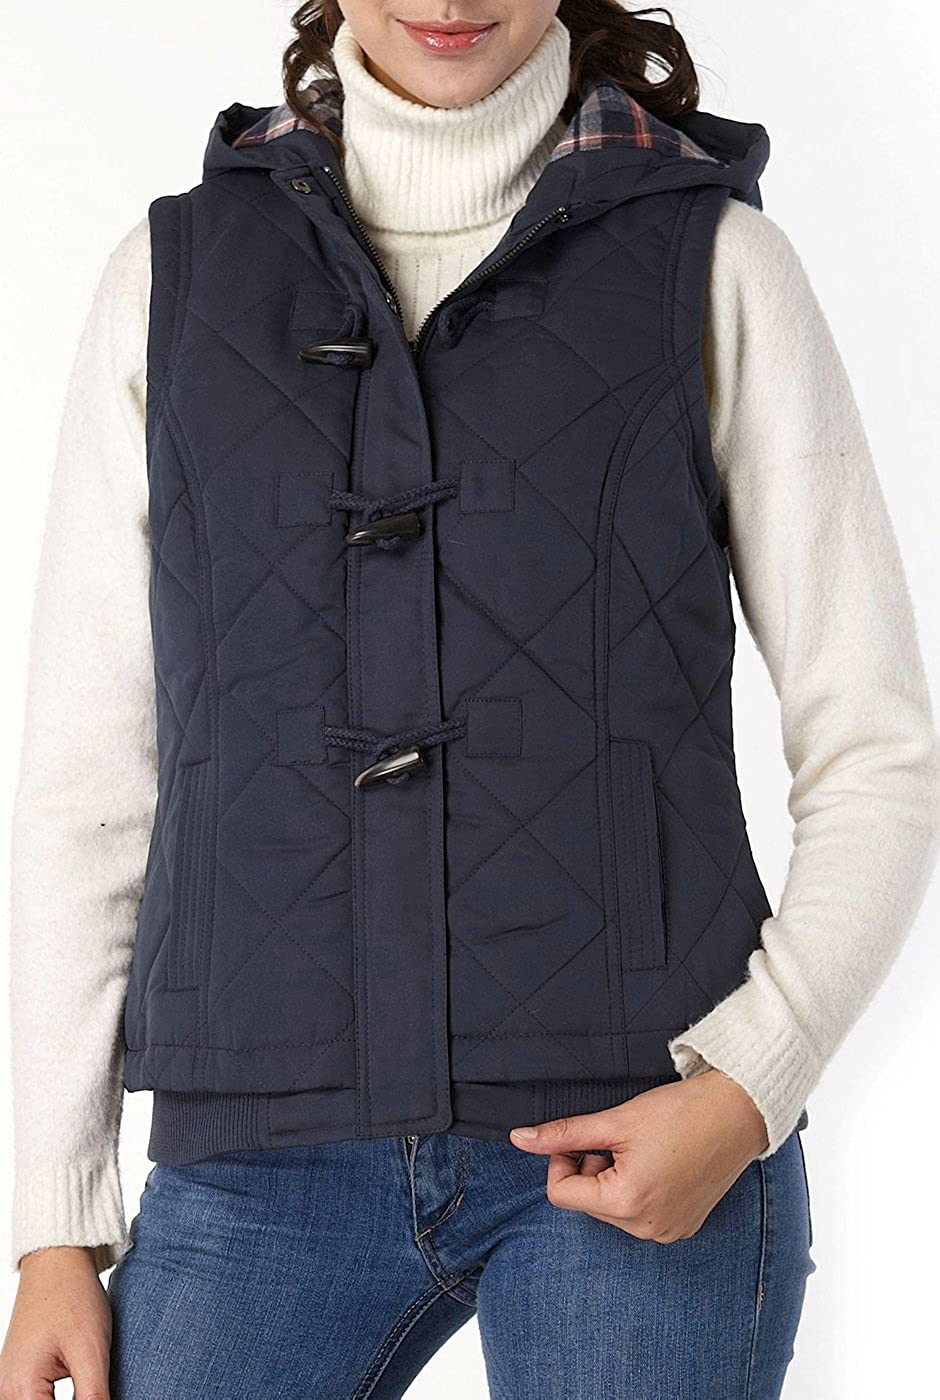 BGSD Women's Quilted Hooded Vest: Clothing